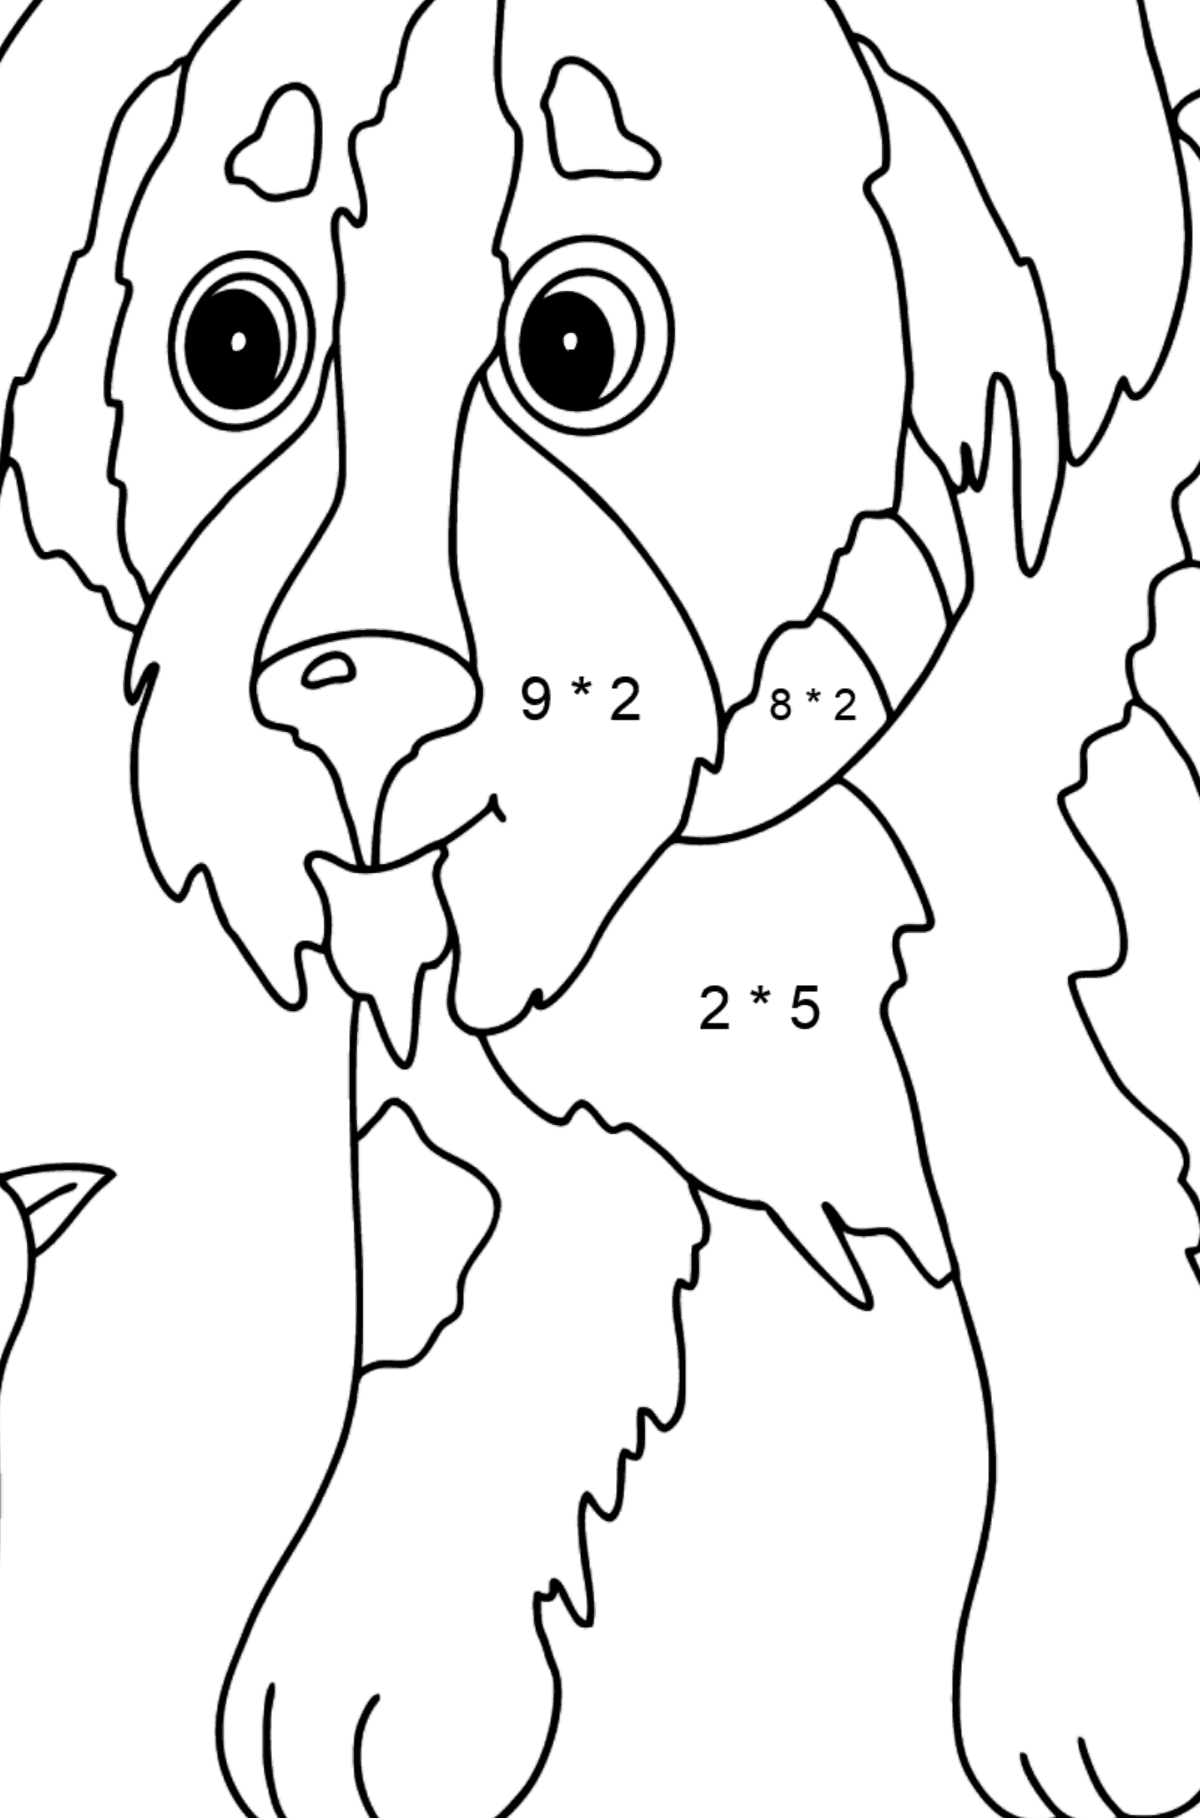 Coloring Page - A Dog is Talking to a Bird - Math Coloring - Multiplication for Kids